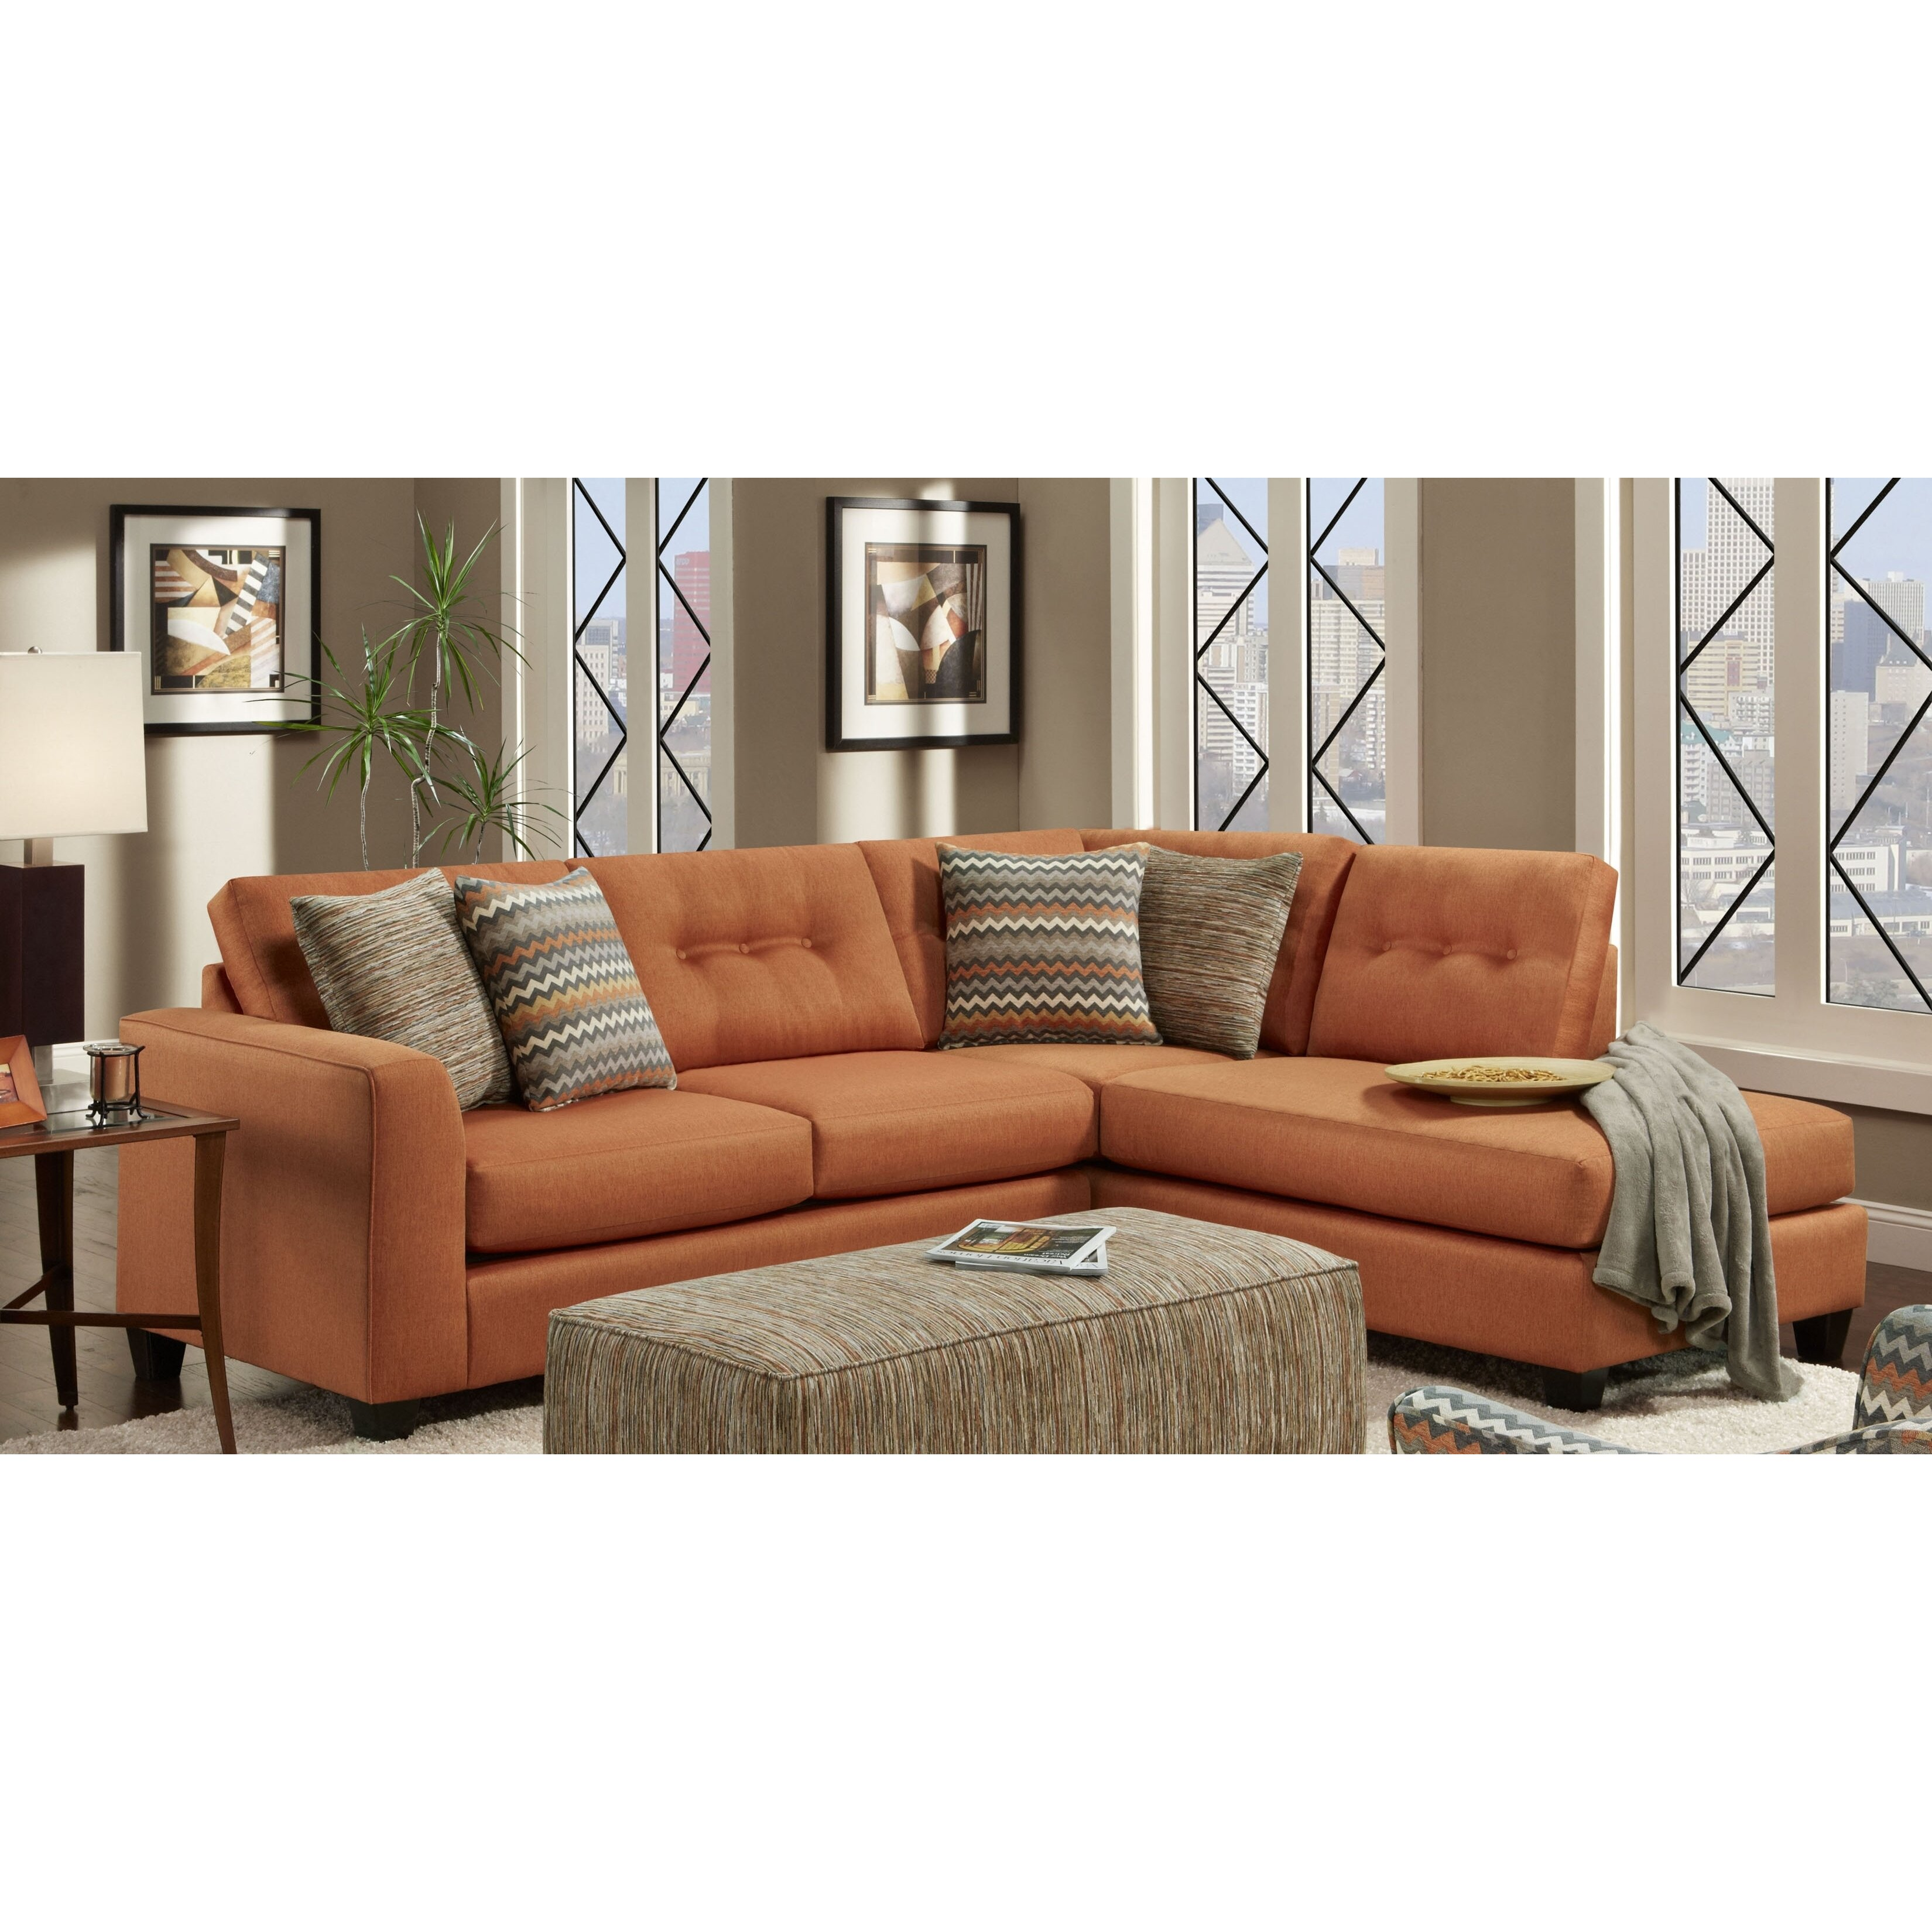 Chelsea Home Phoenix Reversible Chaise Sectional Reviews Wayfair